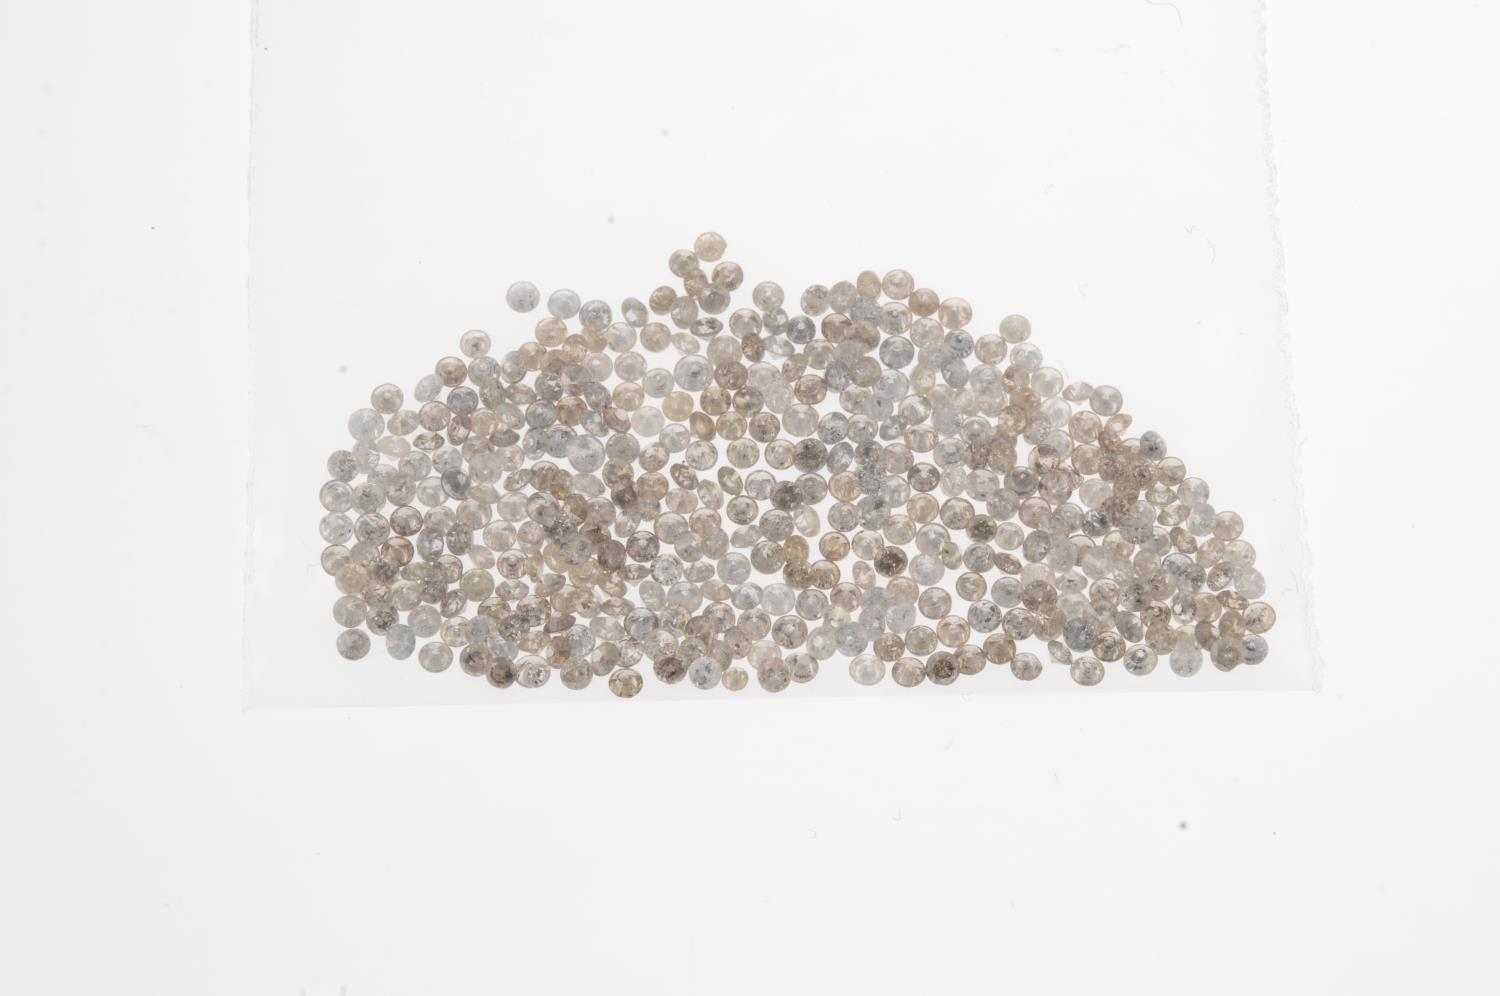 A small selection of round brilliant-cut melee diamonds and 'brown' melee diamonds. - Image 2 of 2